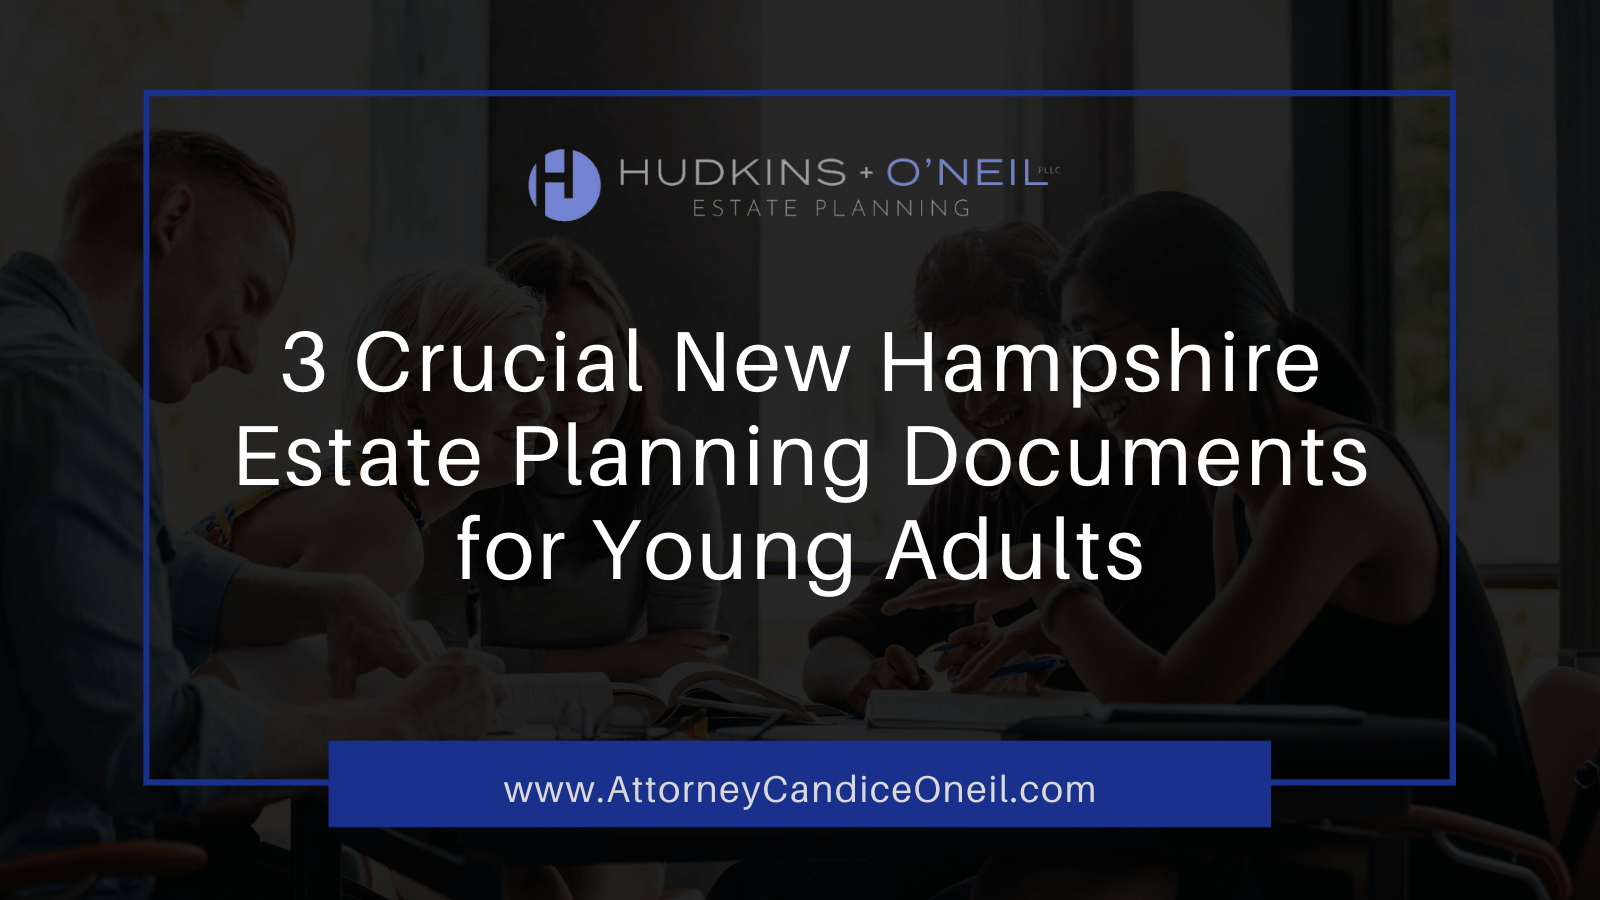 3 Crucial New Hampshire Estate Planning Documents for Young Adults